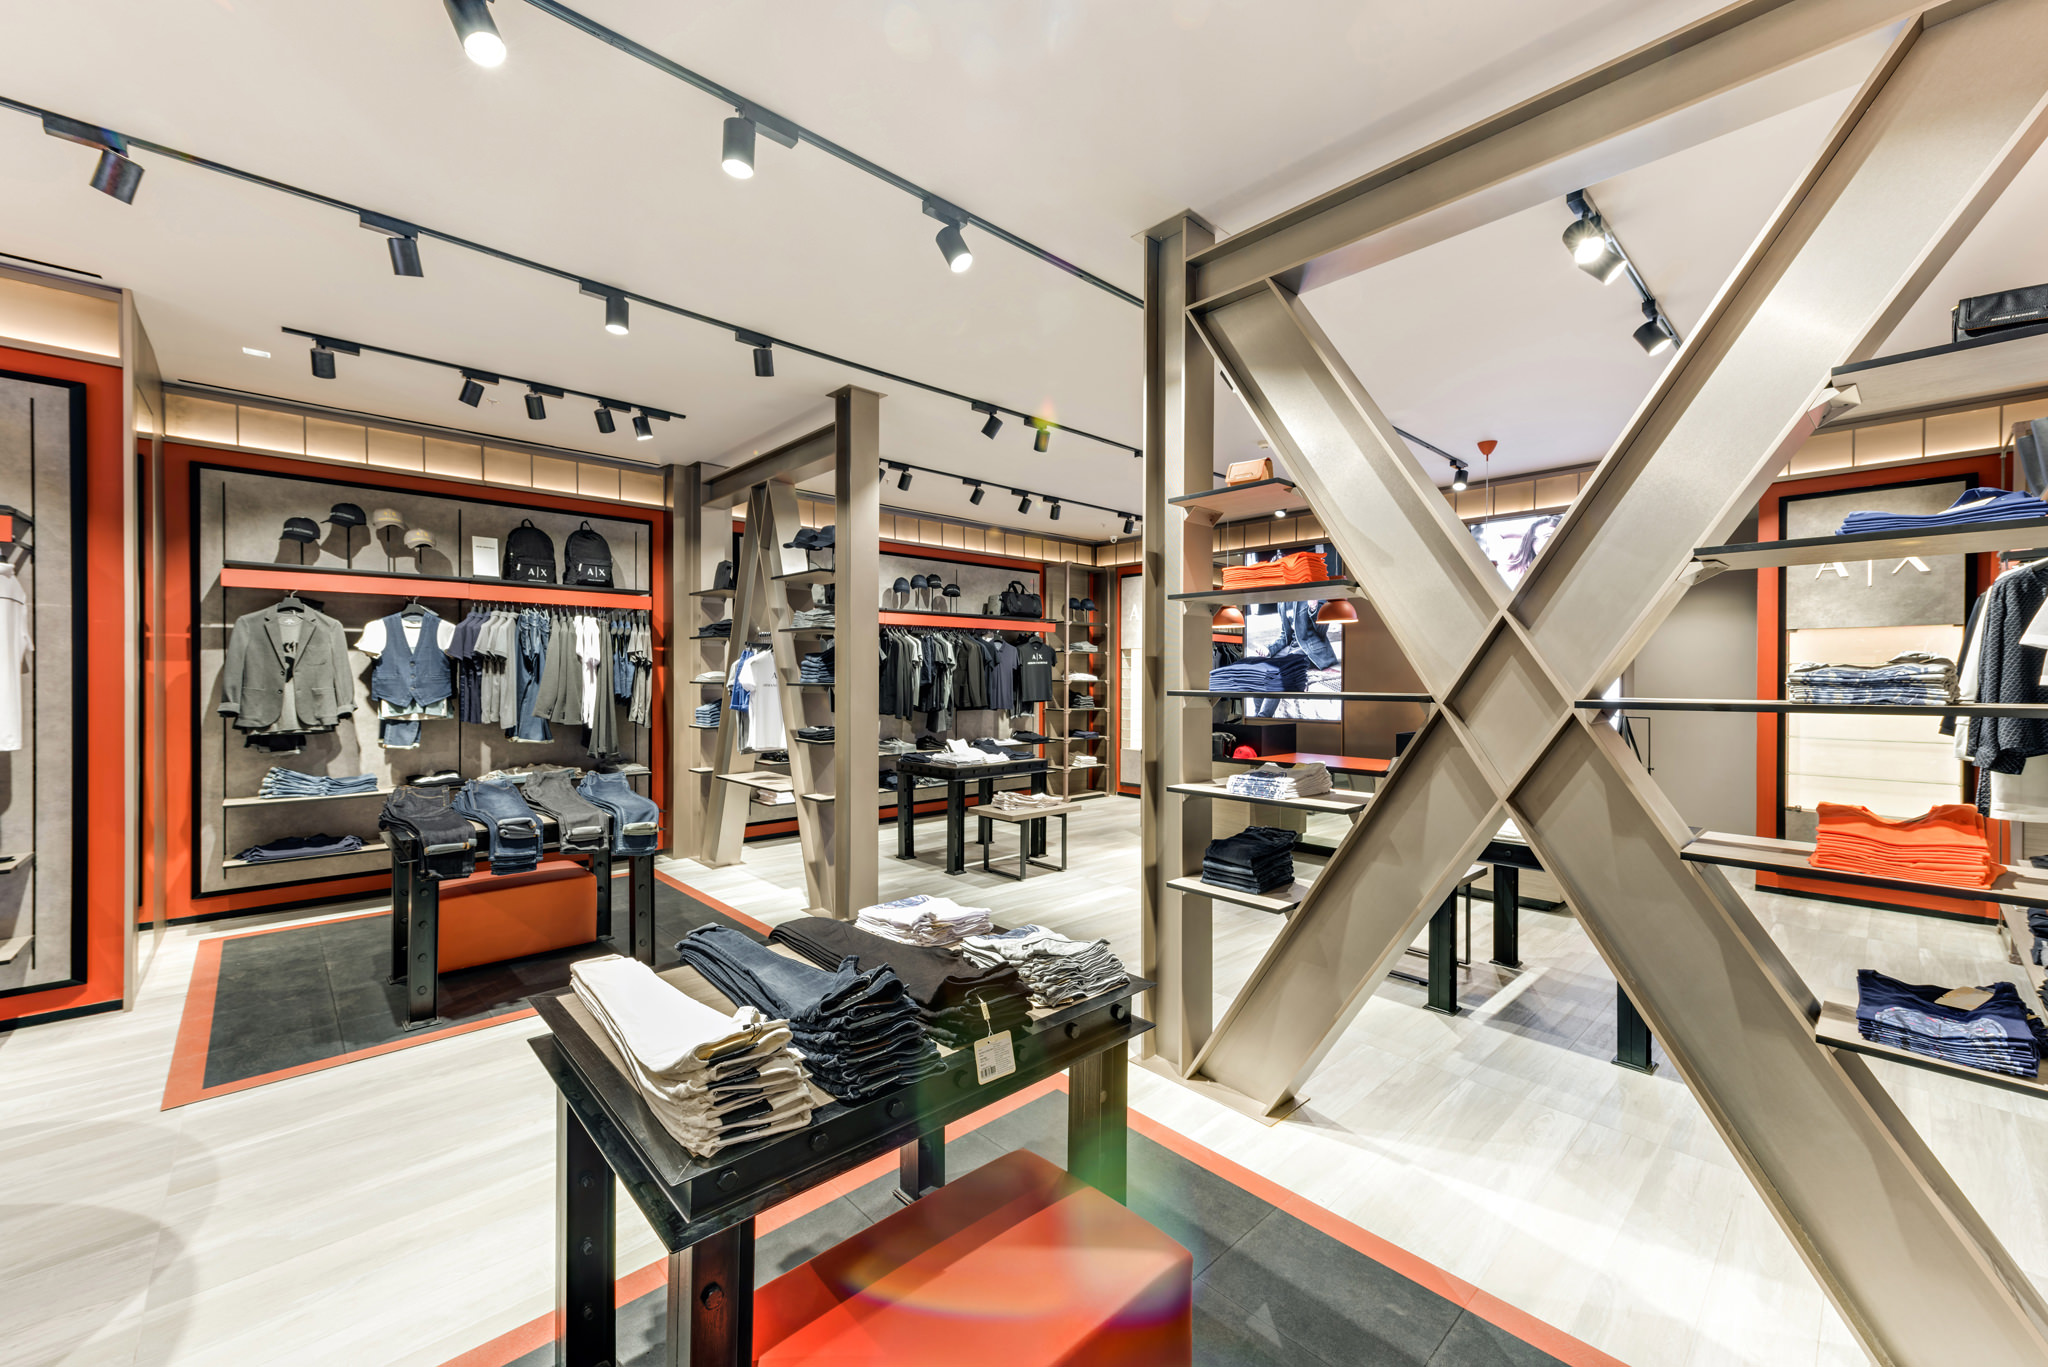 20160801 - Armani Exchange - HCM - Commercial - Interior - Store - Retouch 0009.jpg